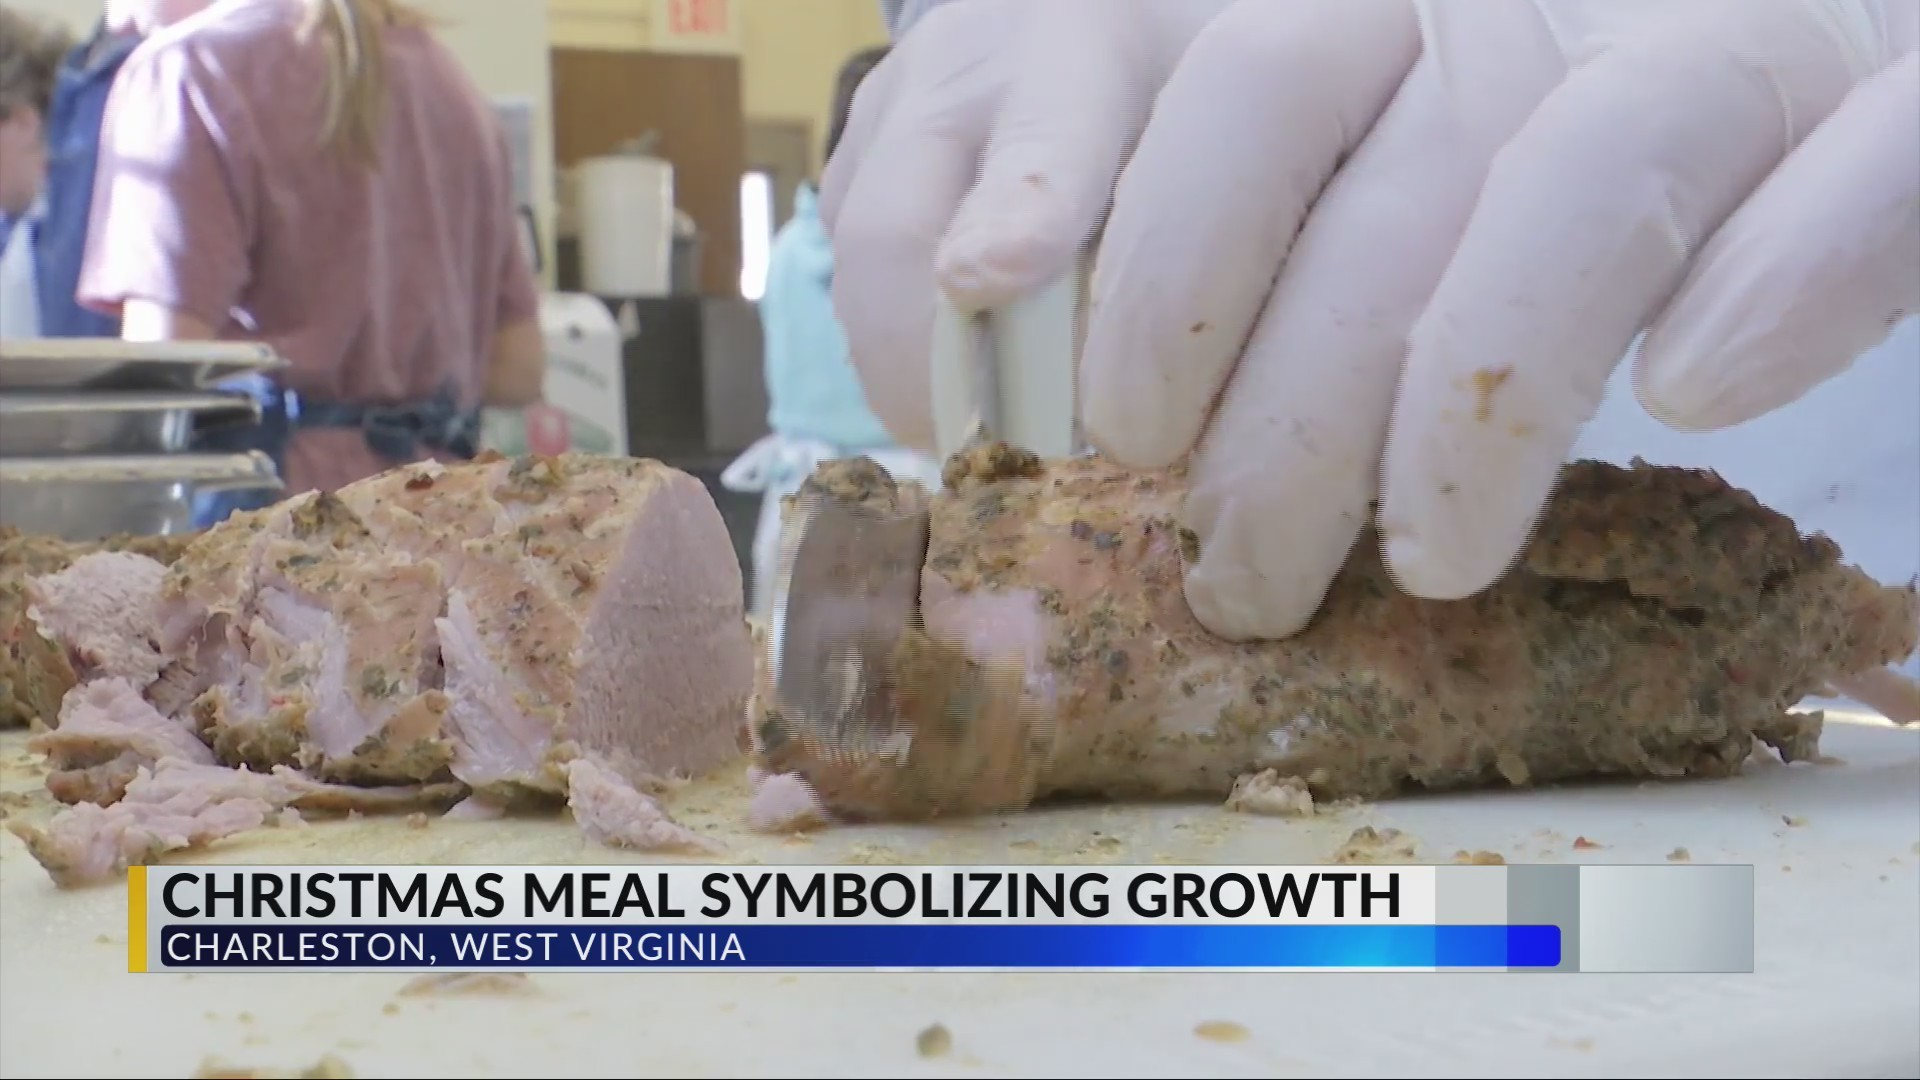 Local non-profit serves Christmas Day meal symbolizing growth